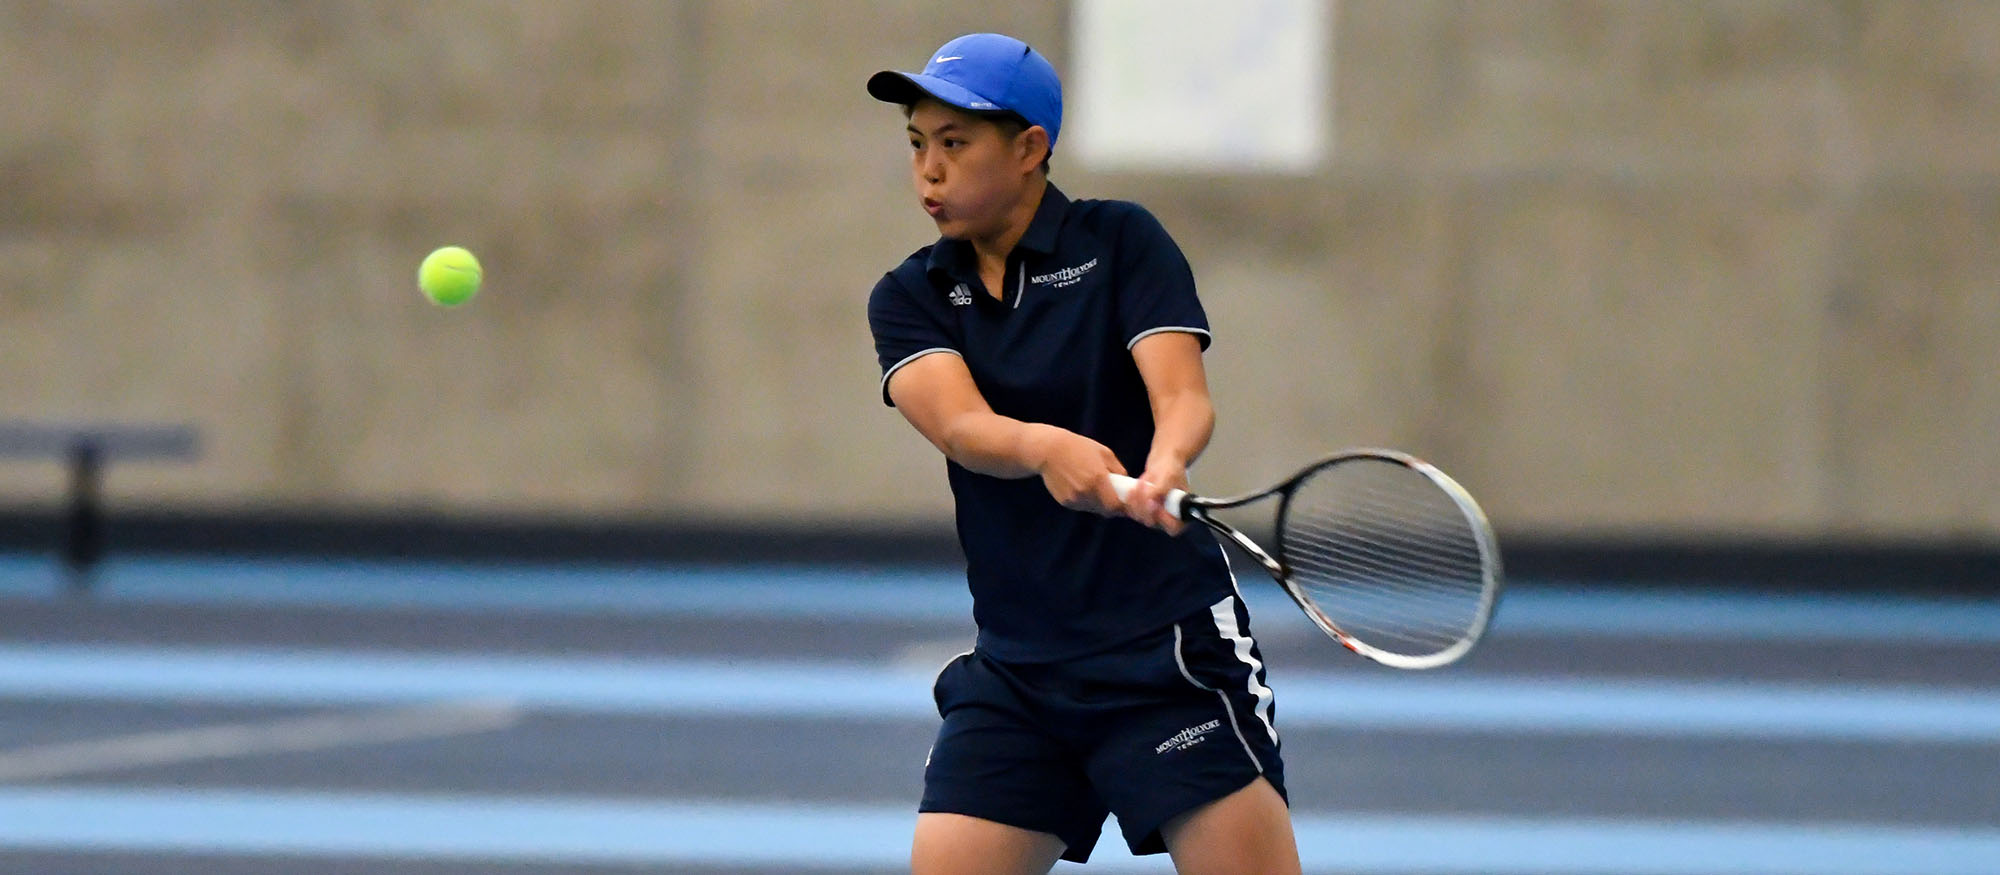 Action photo of Lyons tennis player, Ching-Ching Huang.